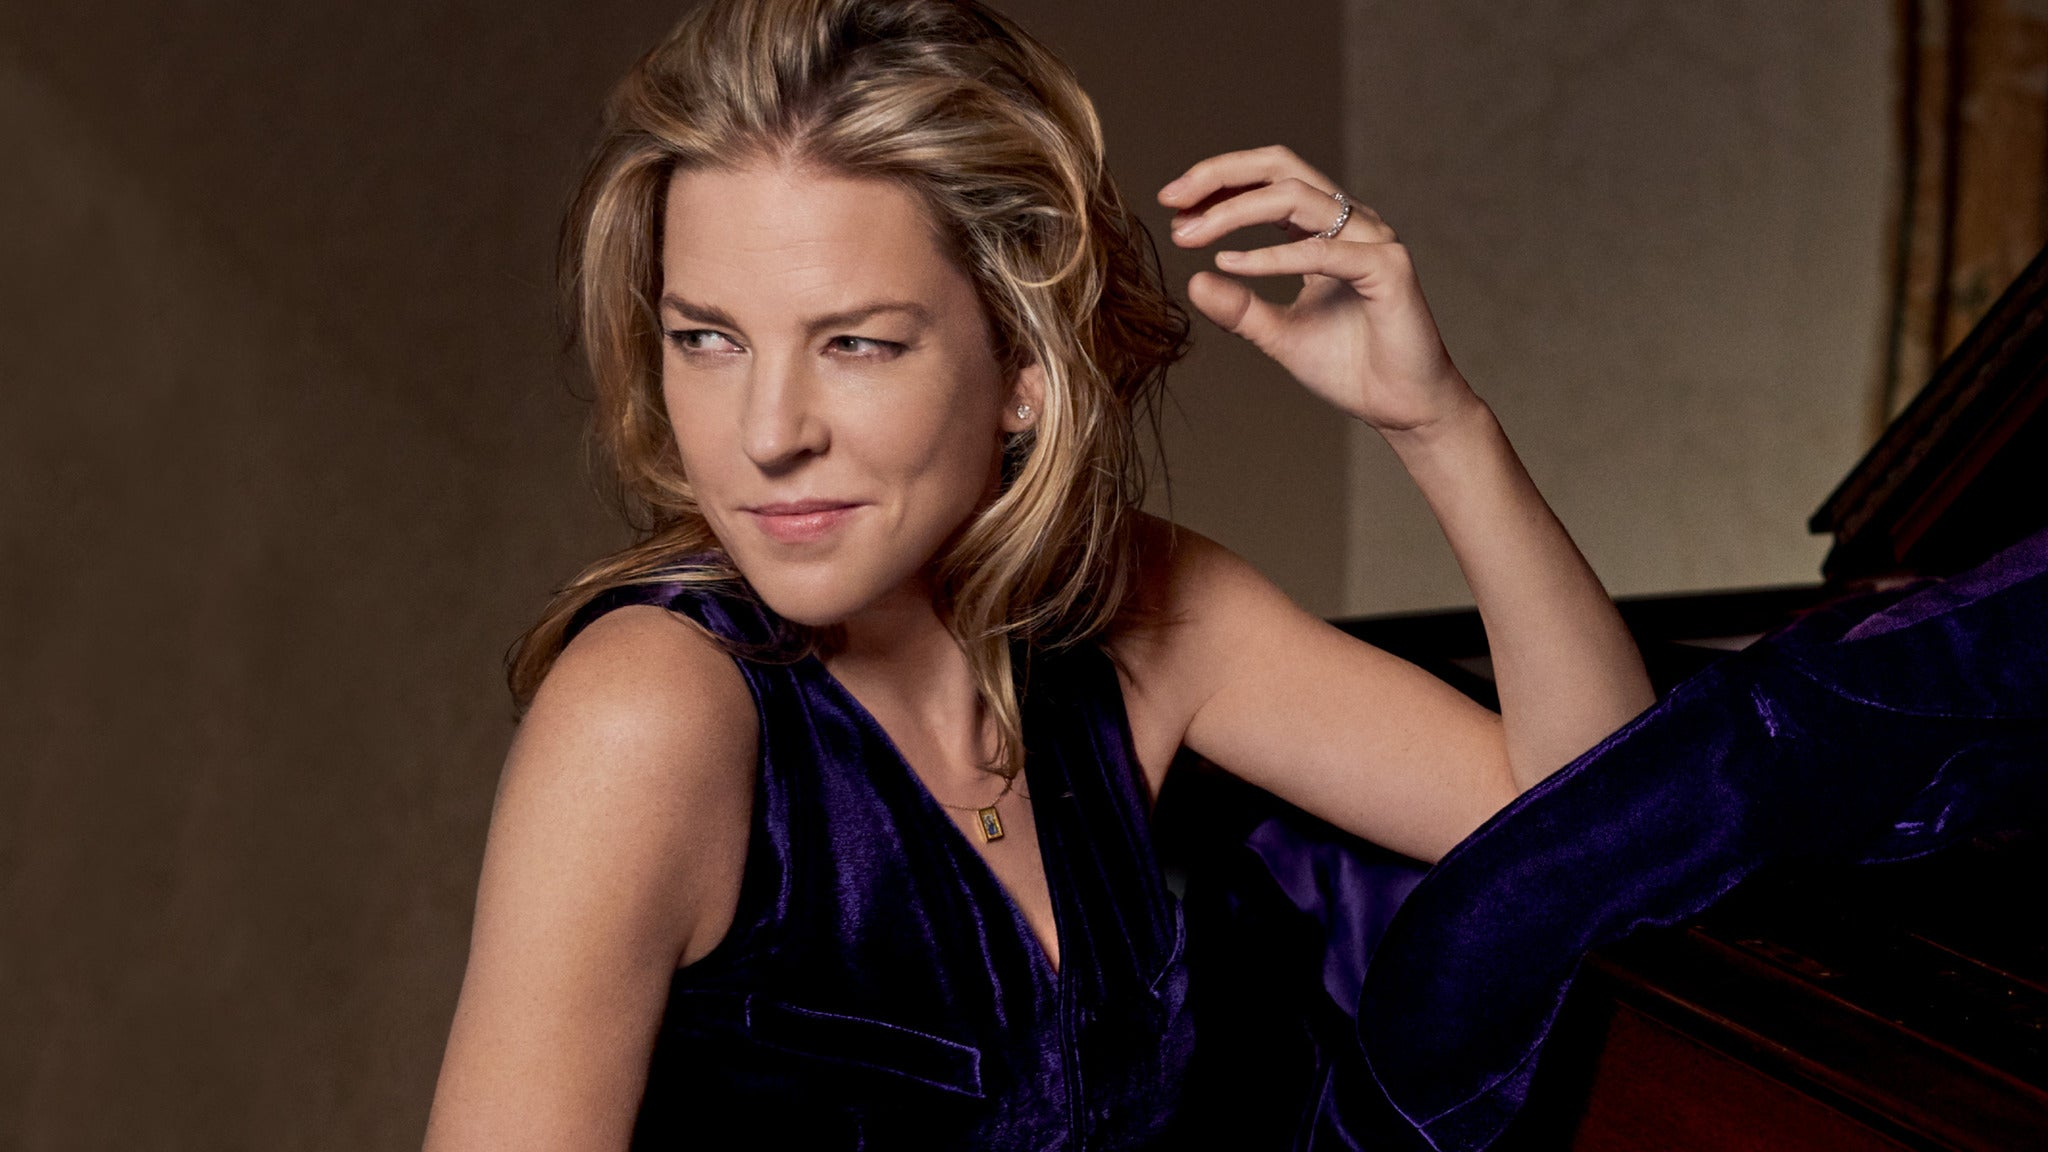 Diana Krall at Smart Financial Centre at Sugar Land